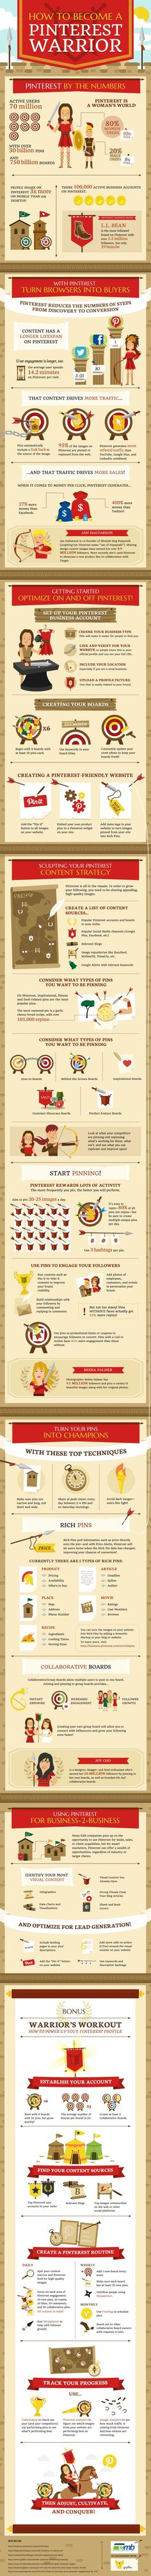 "SOCIAL MEDIA - ""How To use Pinterest for Business : #SocialMedia #Marketing #Pinterest - #infographic""."